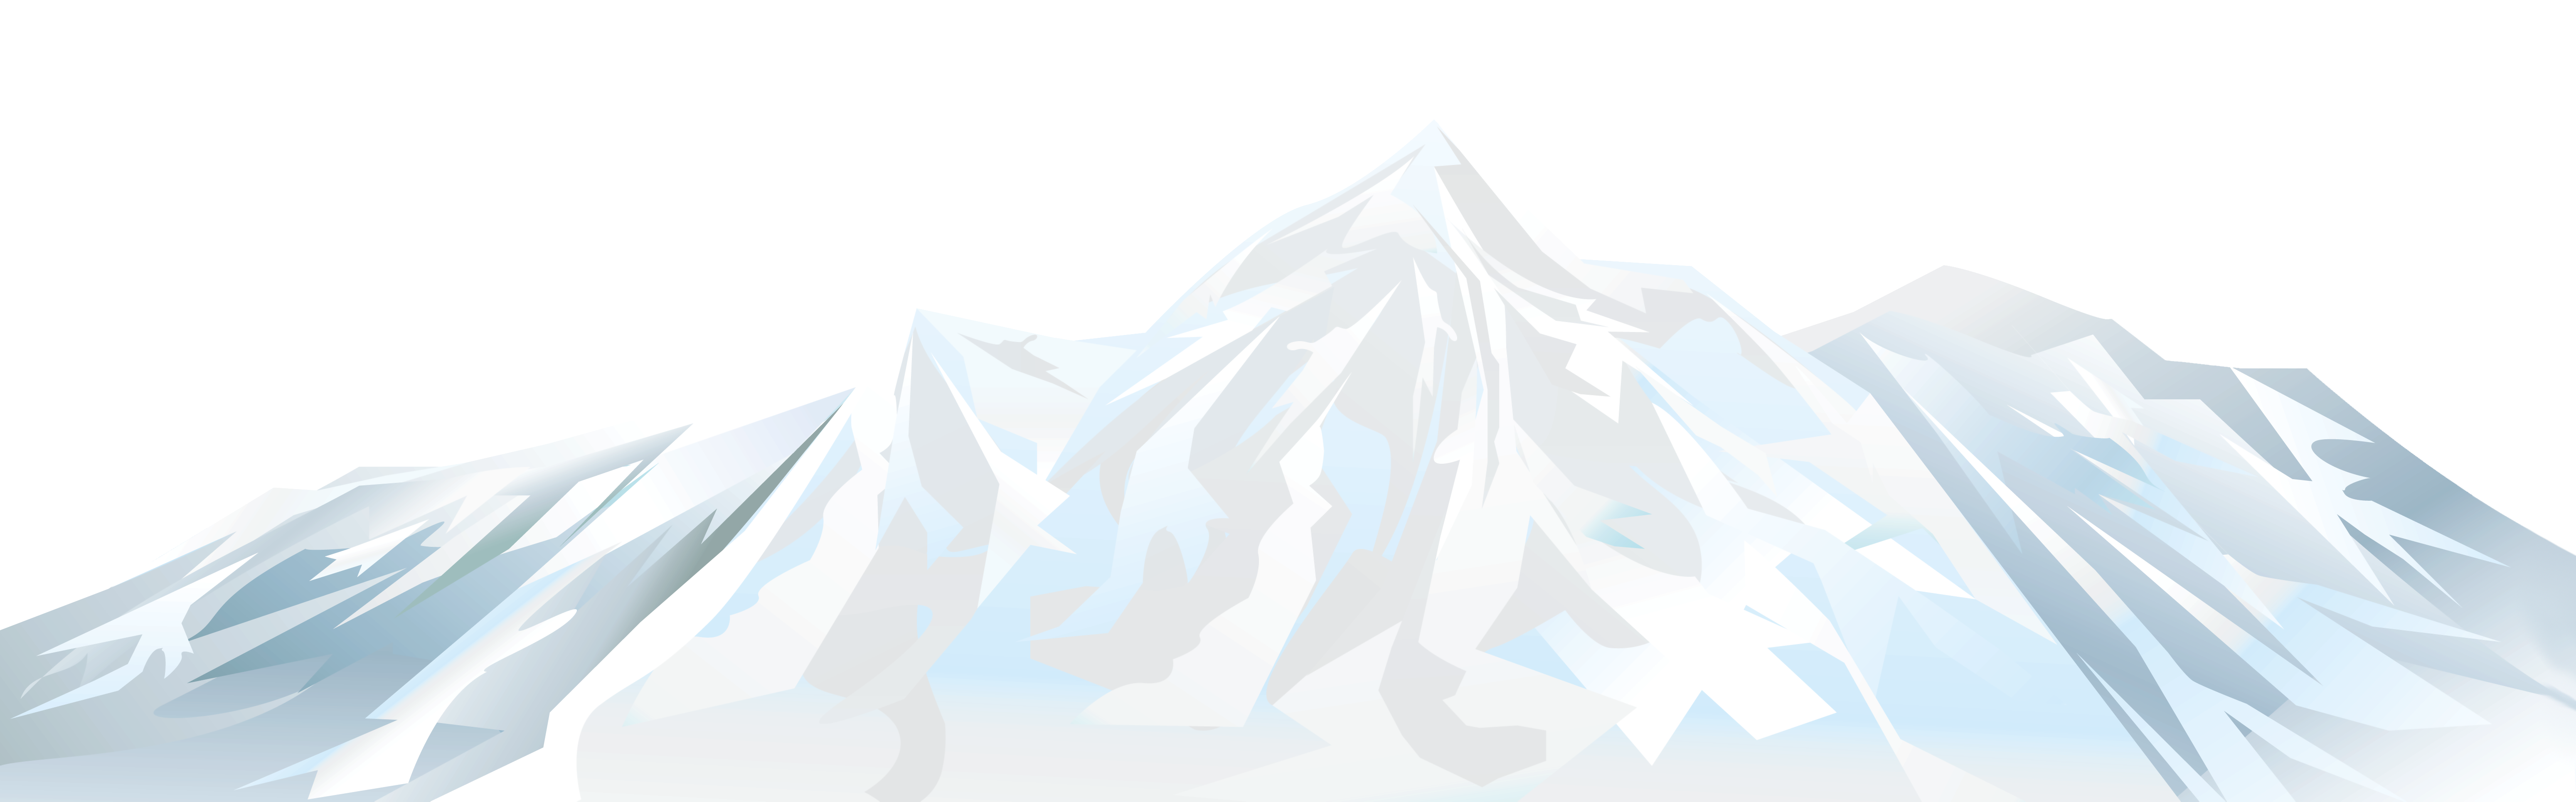 Winter mountain png image. Free snowy mountains clipart images